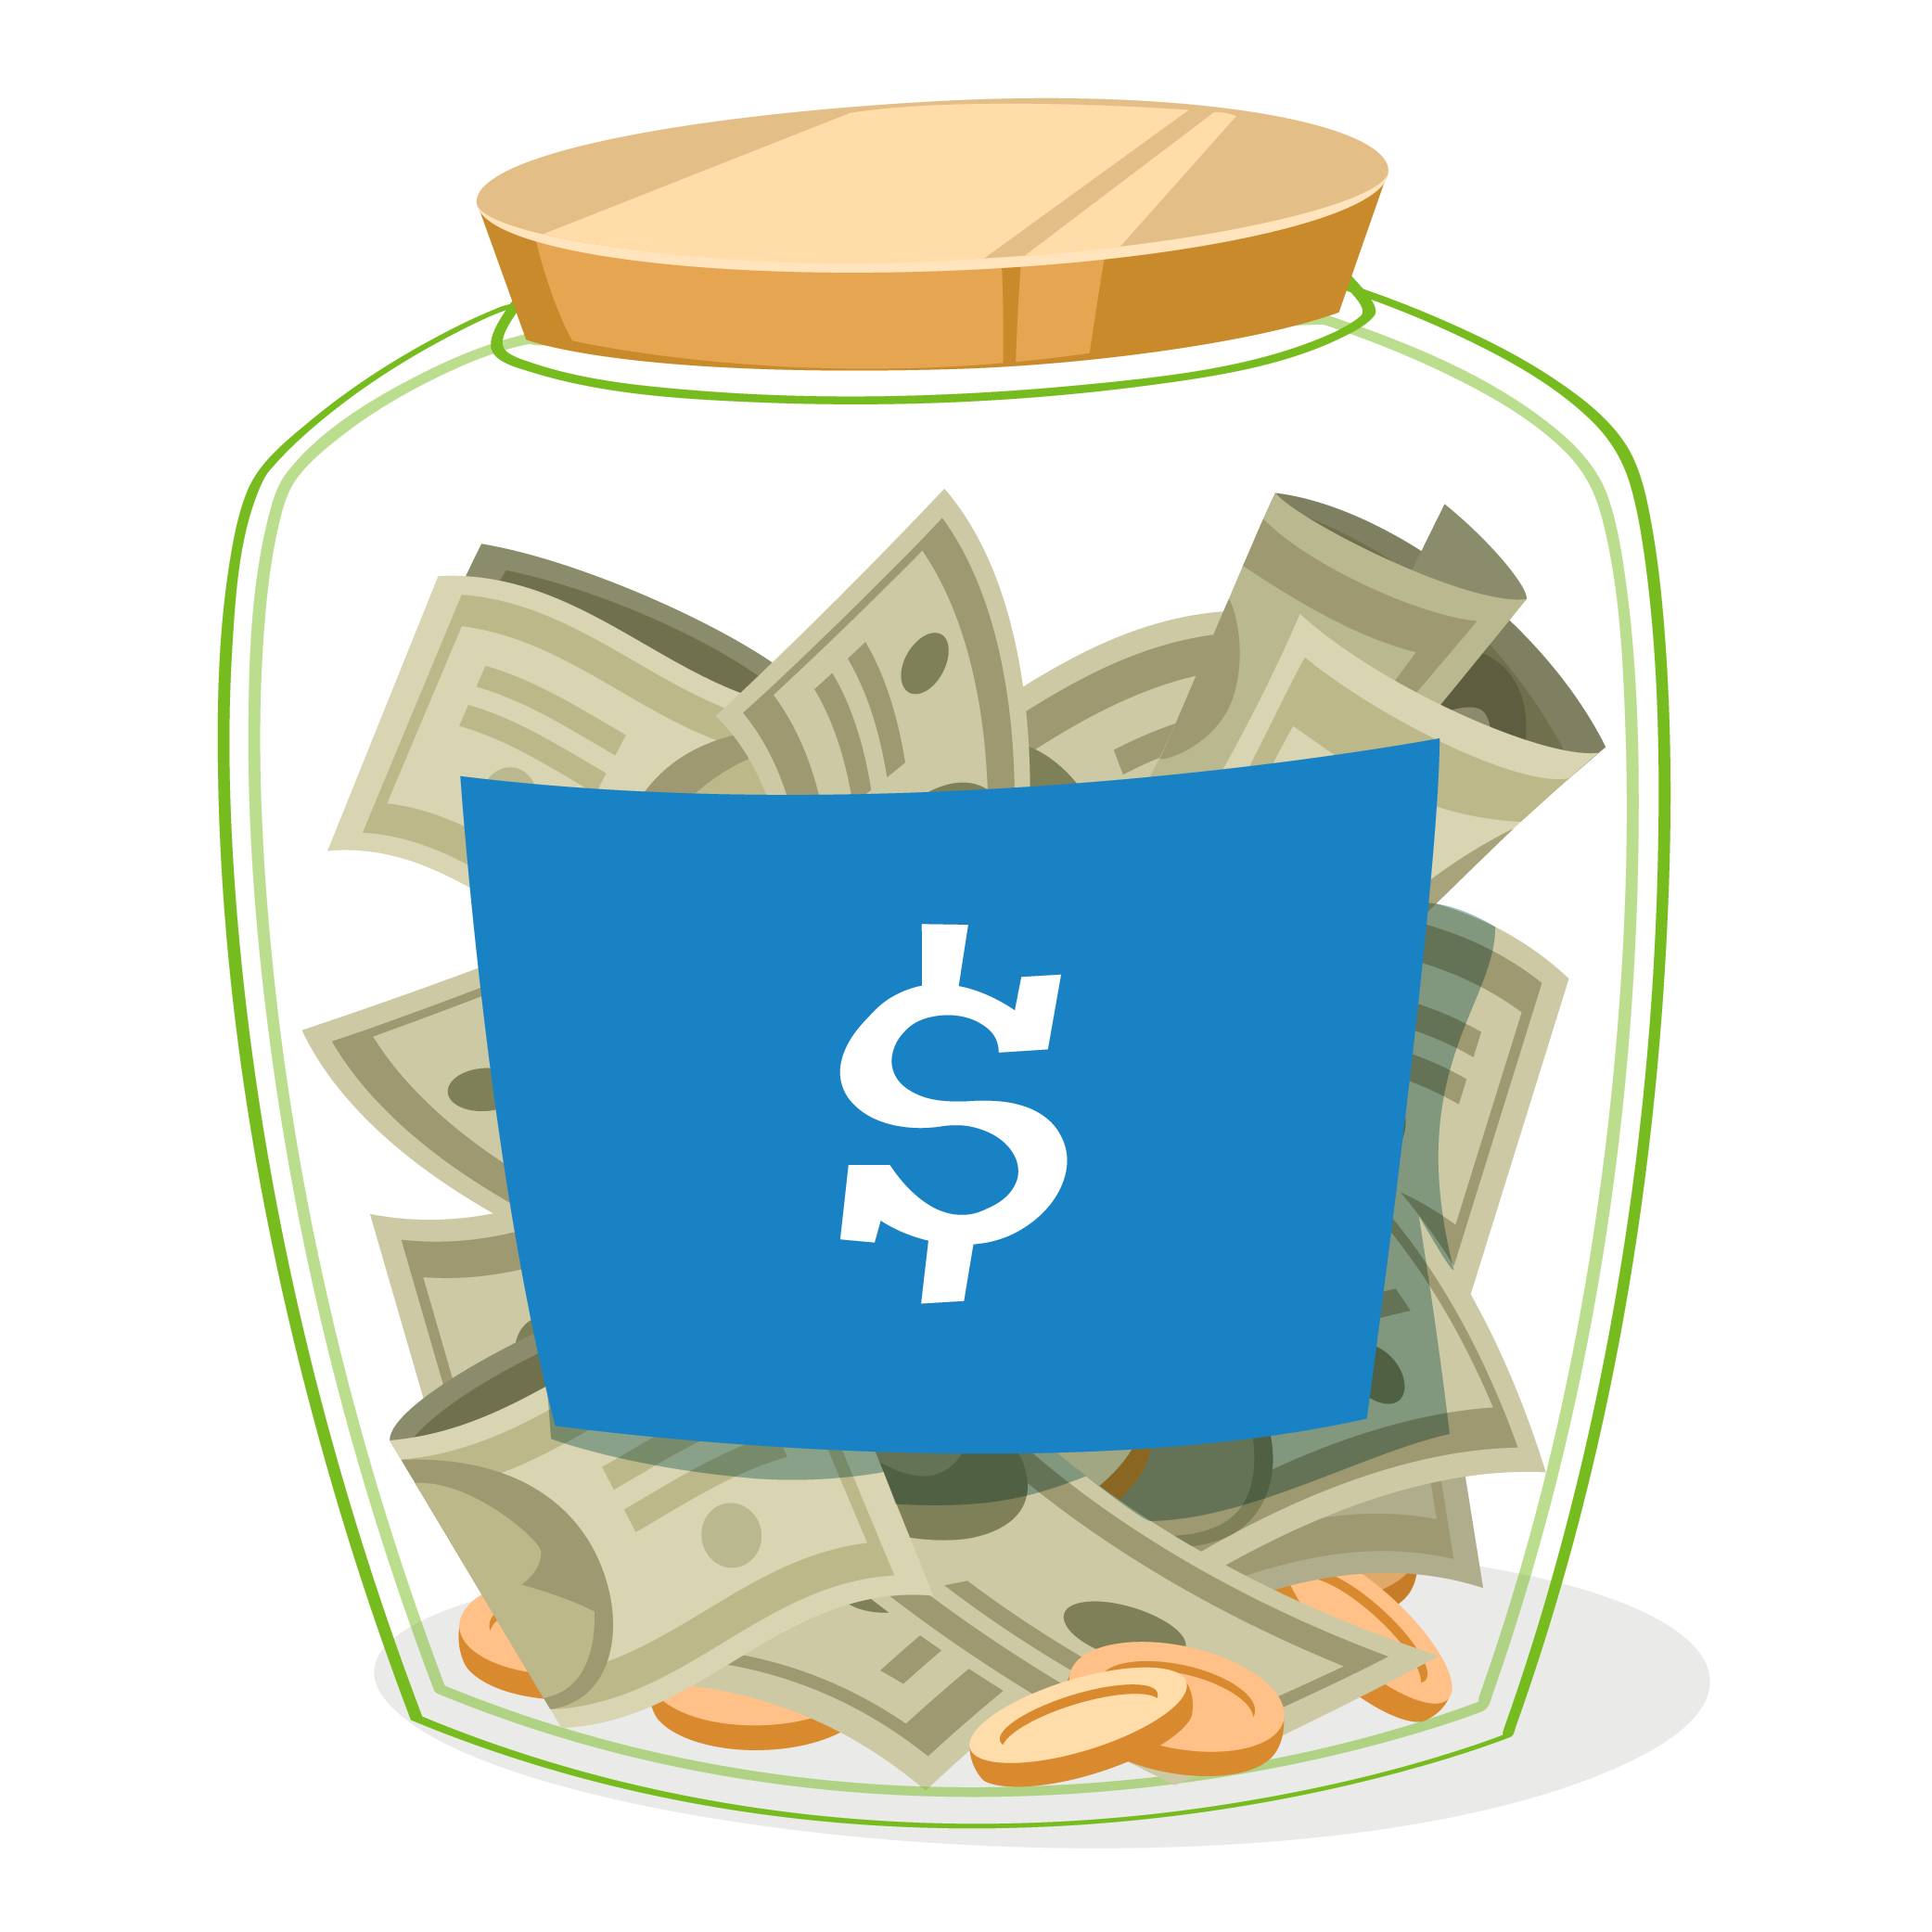 Money clipart teacher. Benefitwise newsletter jar of